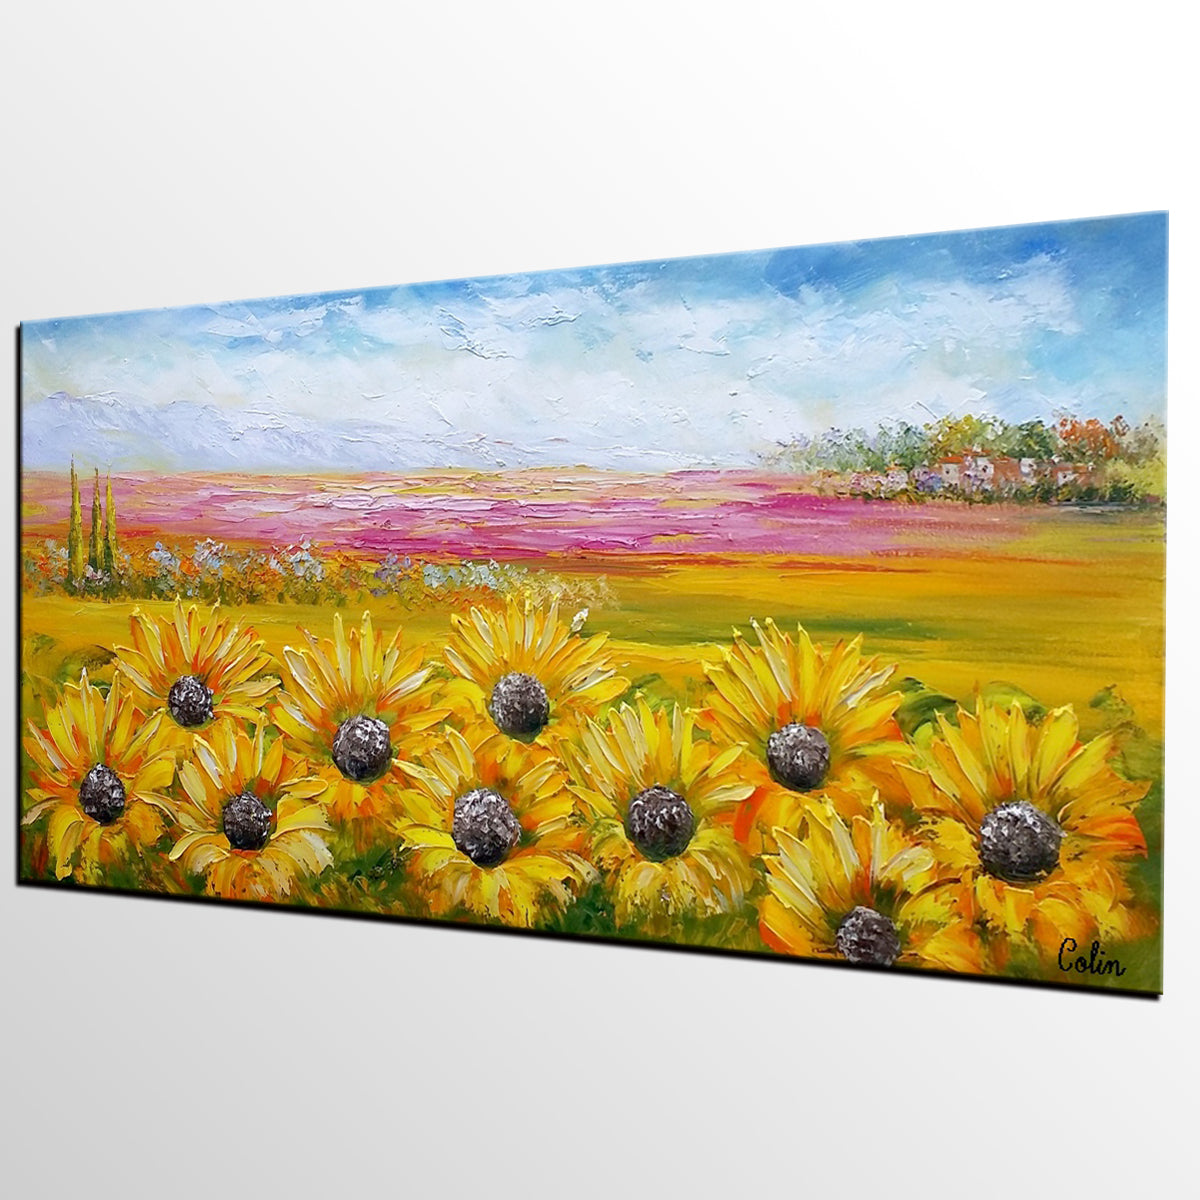 Heavy Texture Art, Canvas Oil Painting, Original Art, Large Art, Sunflower Painting, Original Wall Art, Abstract Painting, Landscape Painting